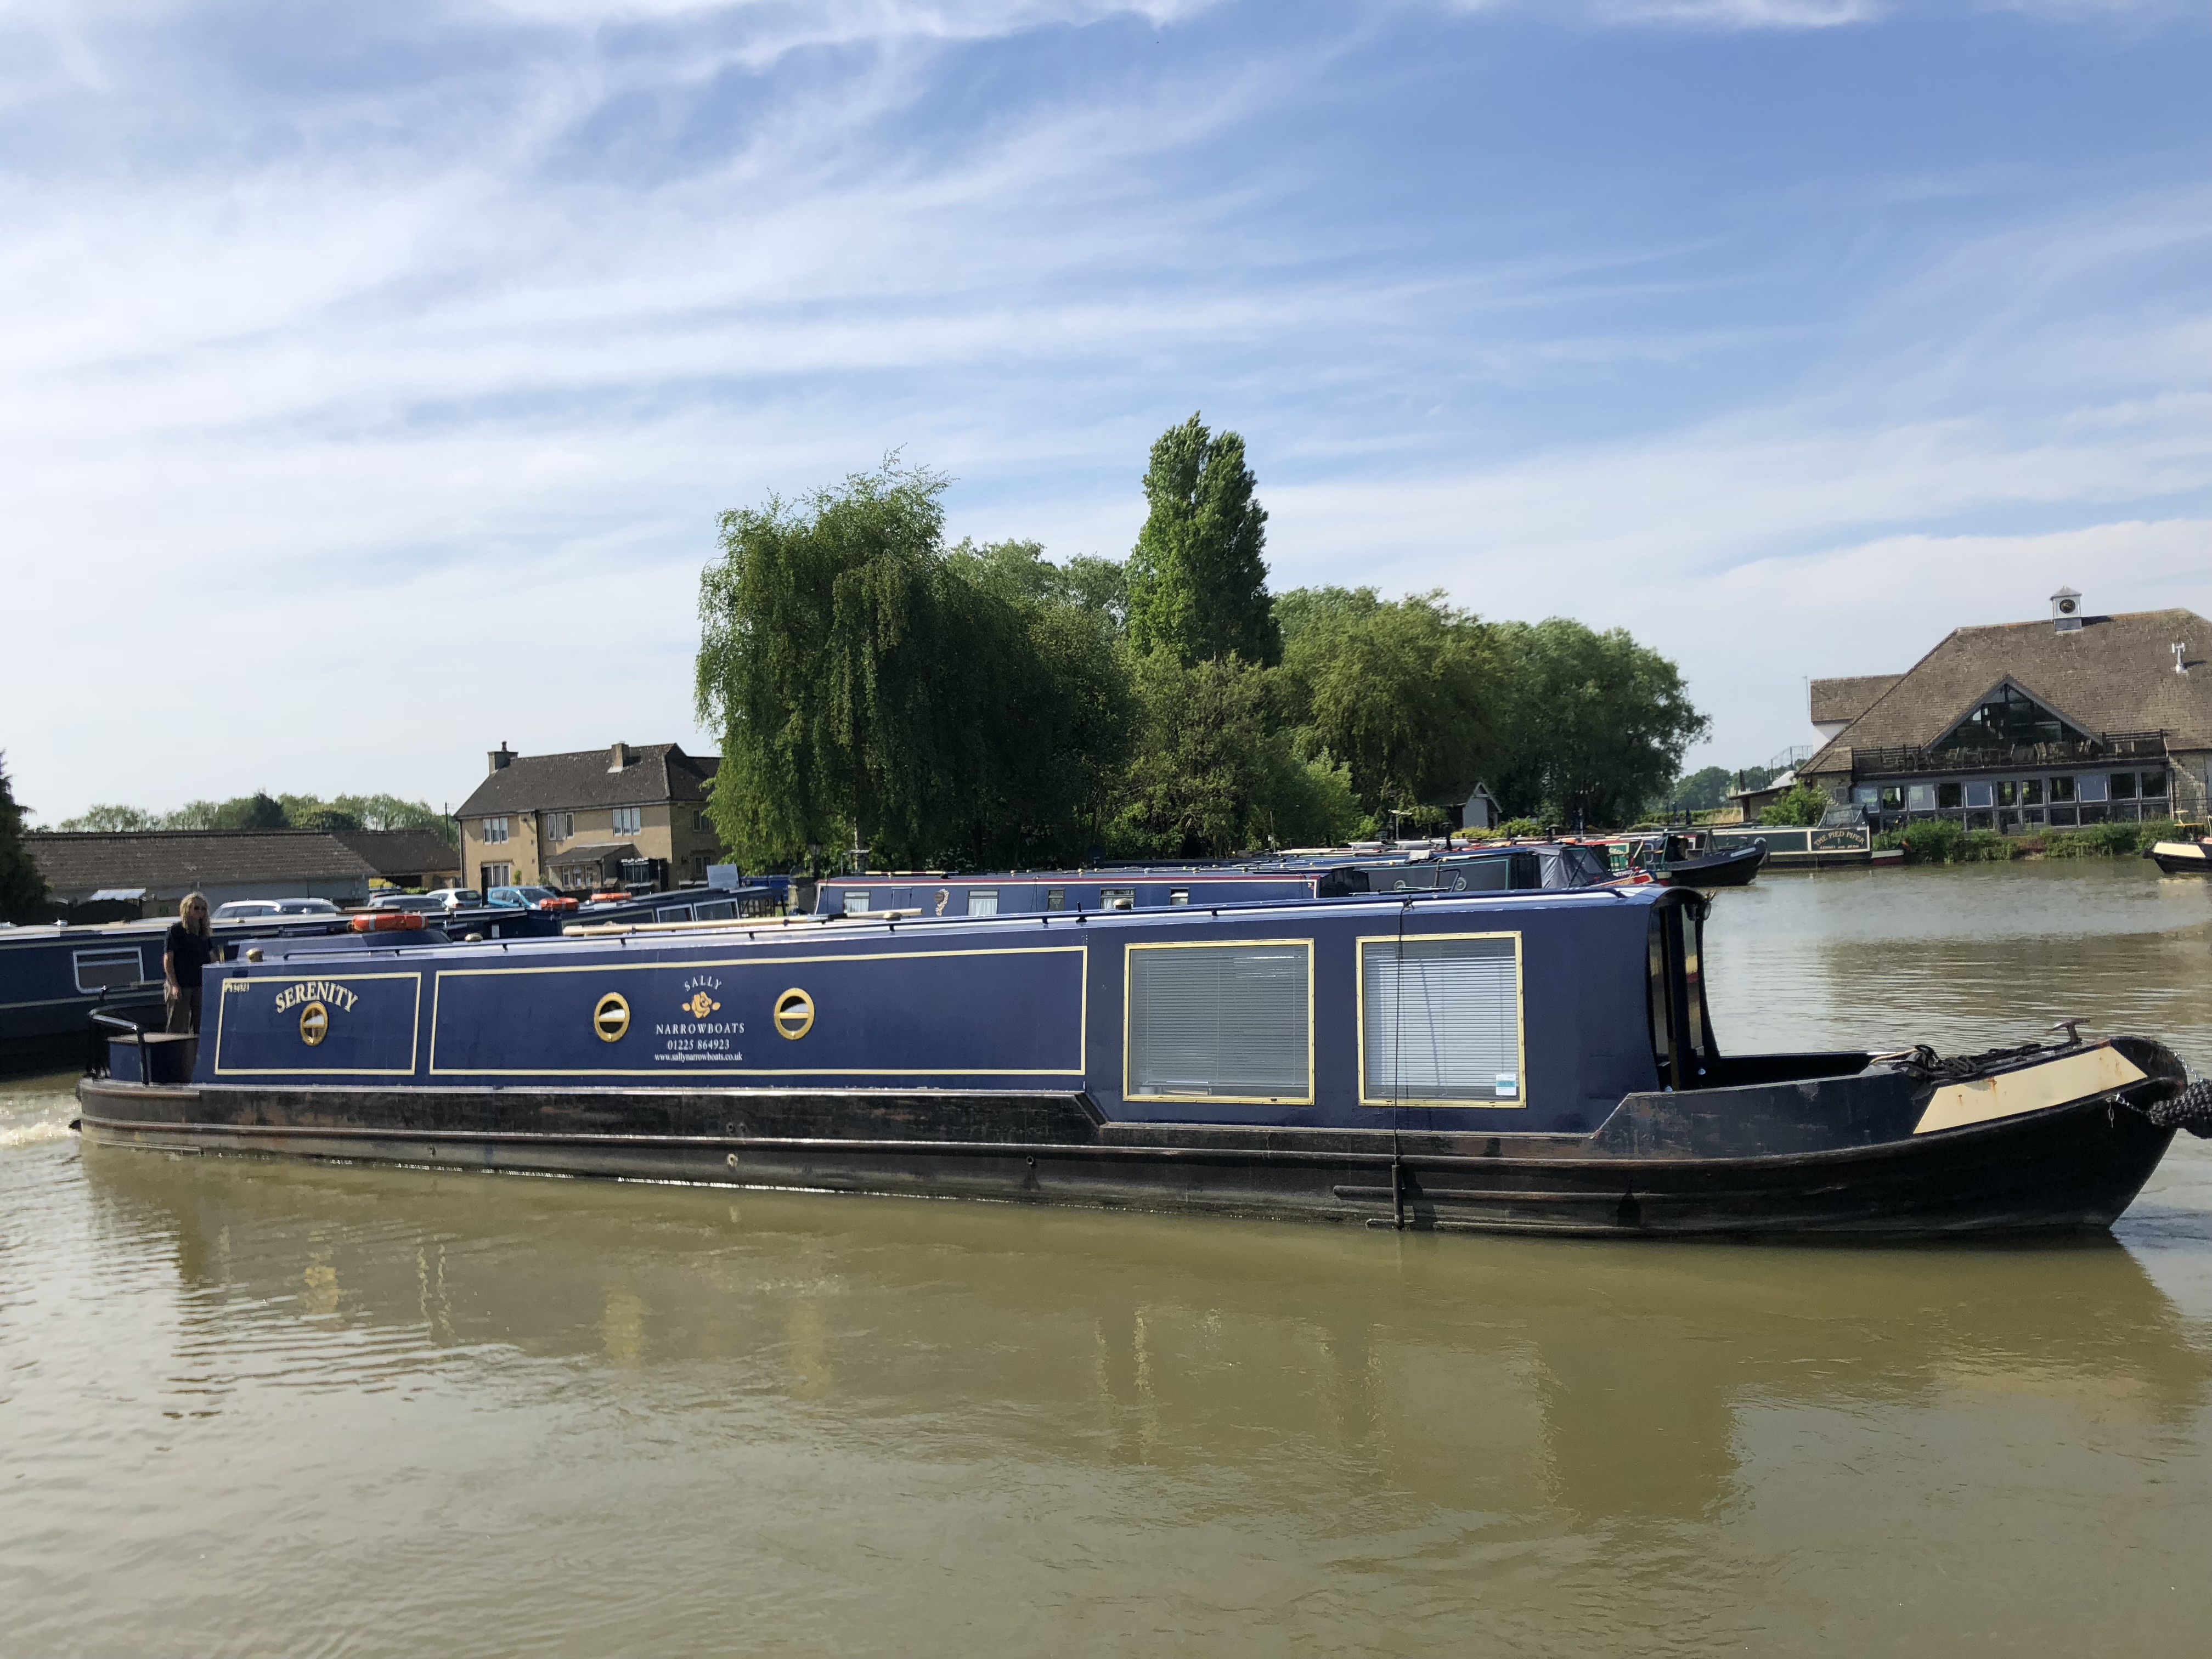 The S-Serenity class canal boat